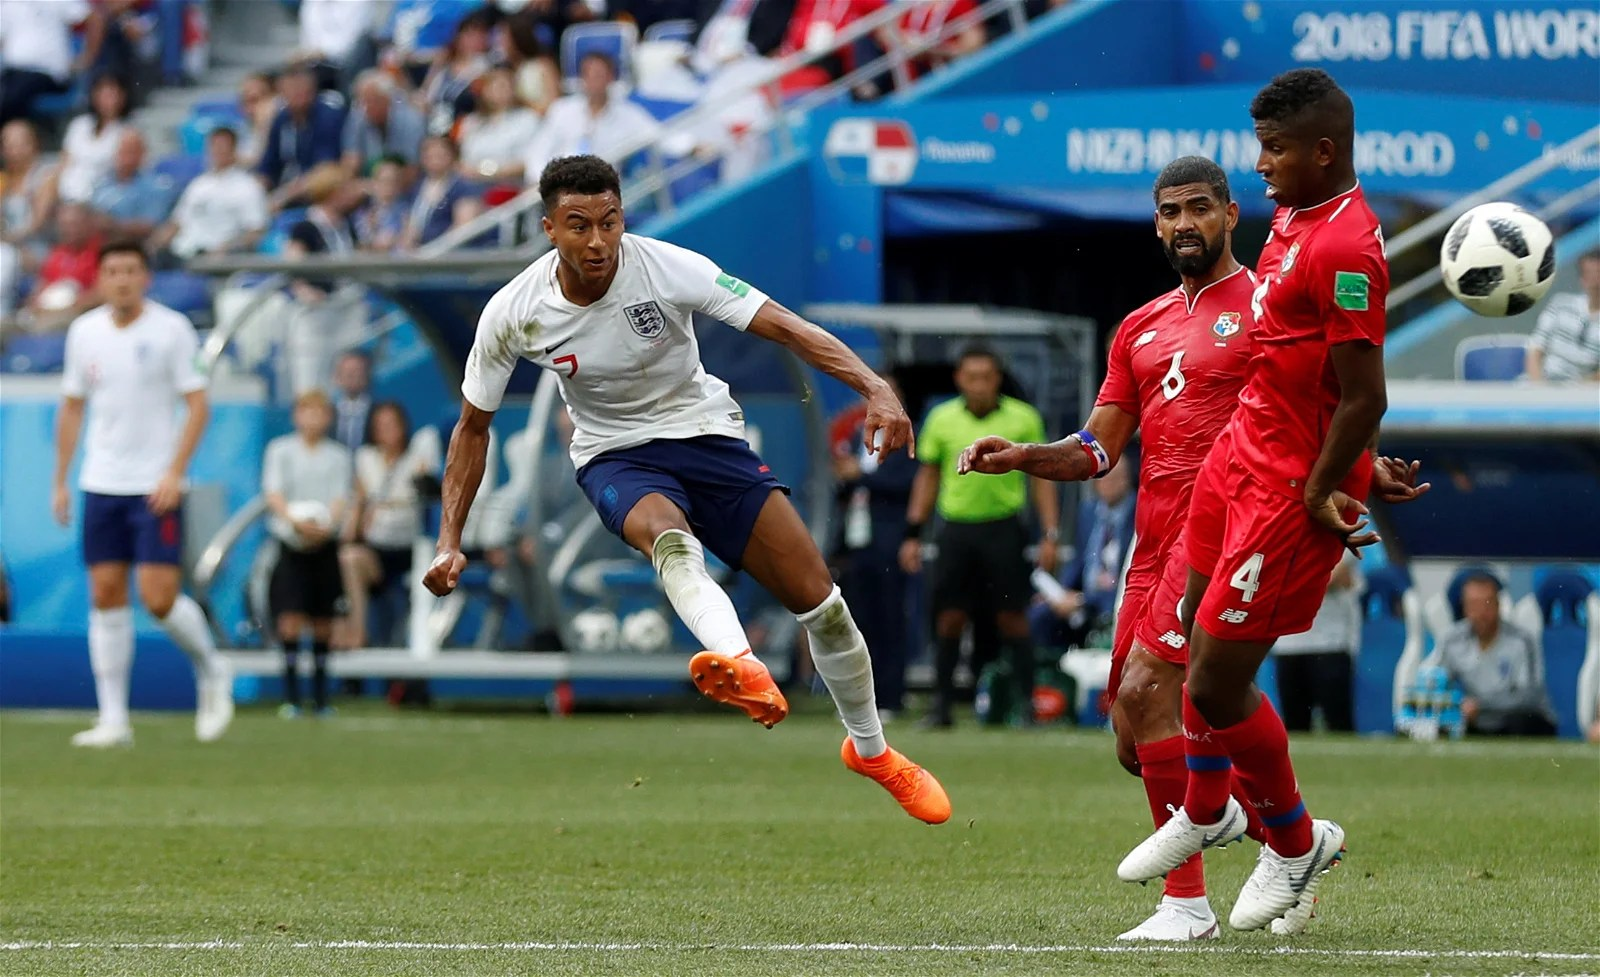 Jesse Lingard scores against Panama at the World Cup